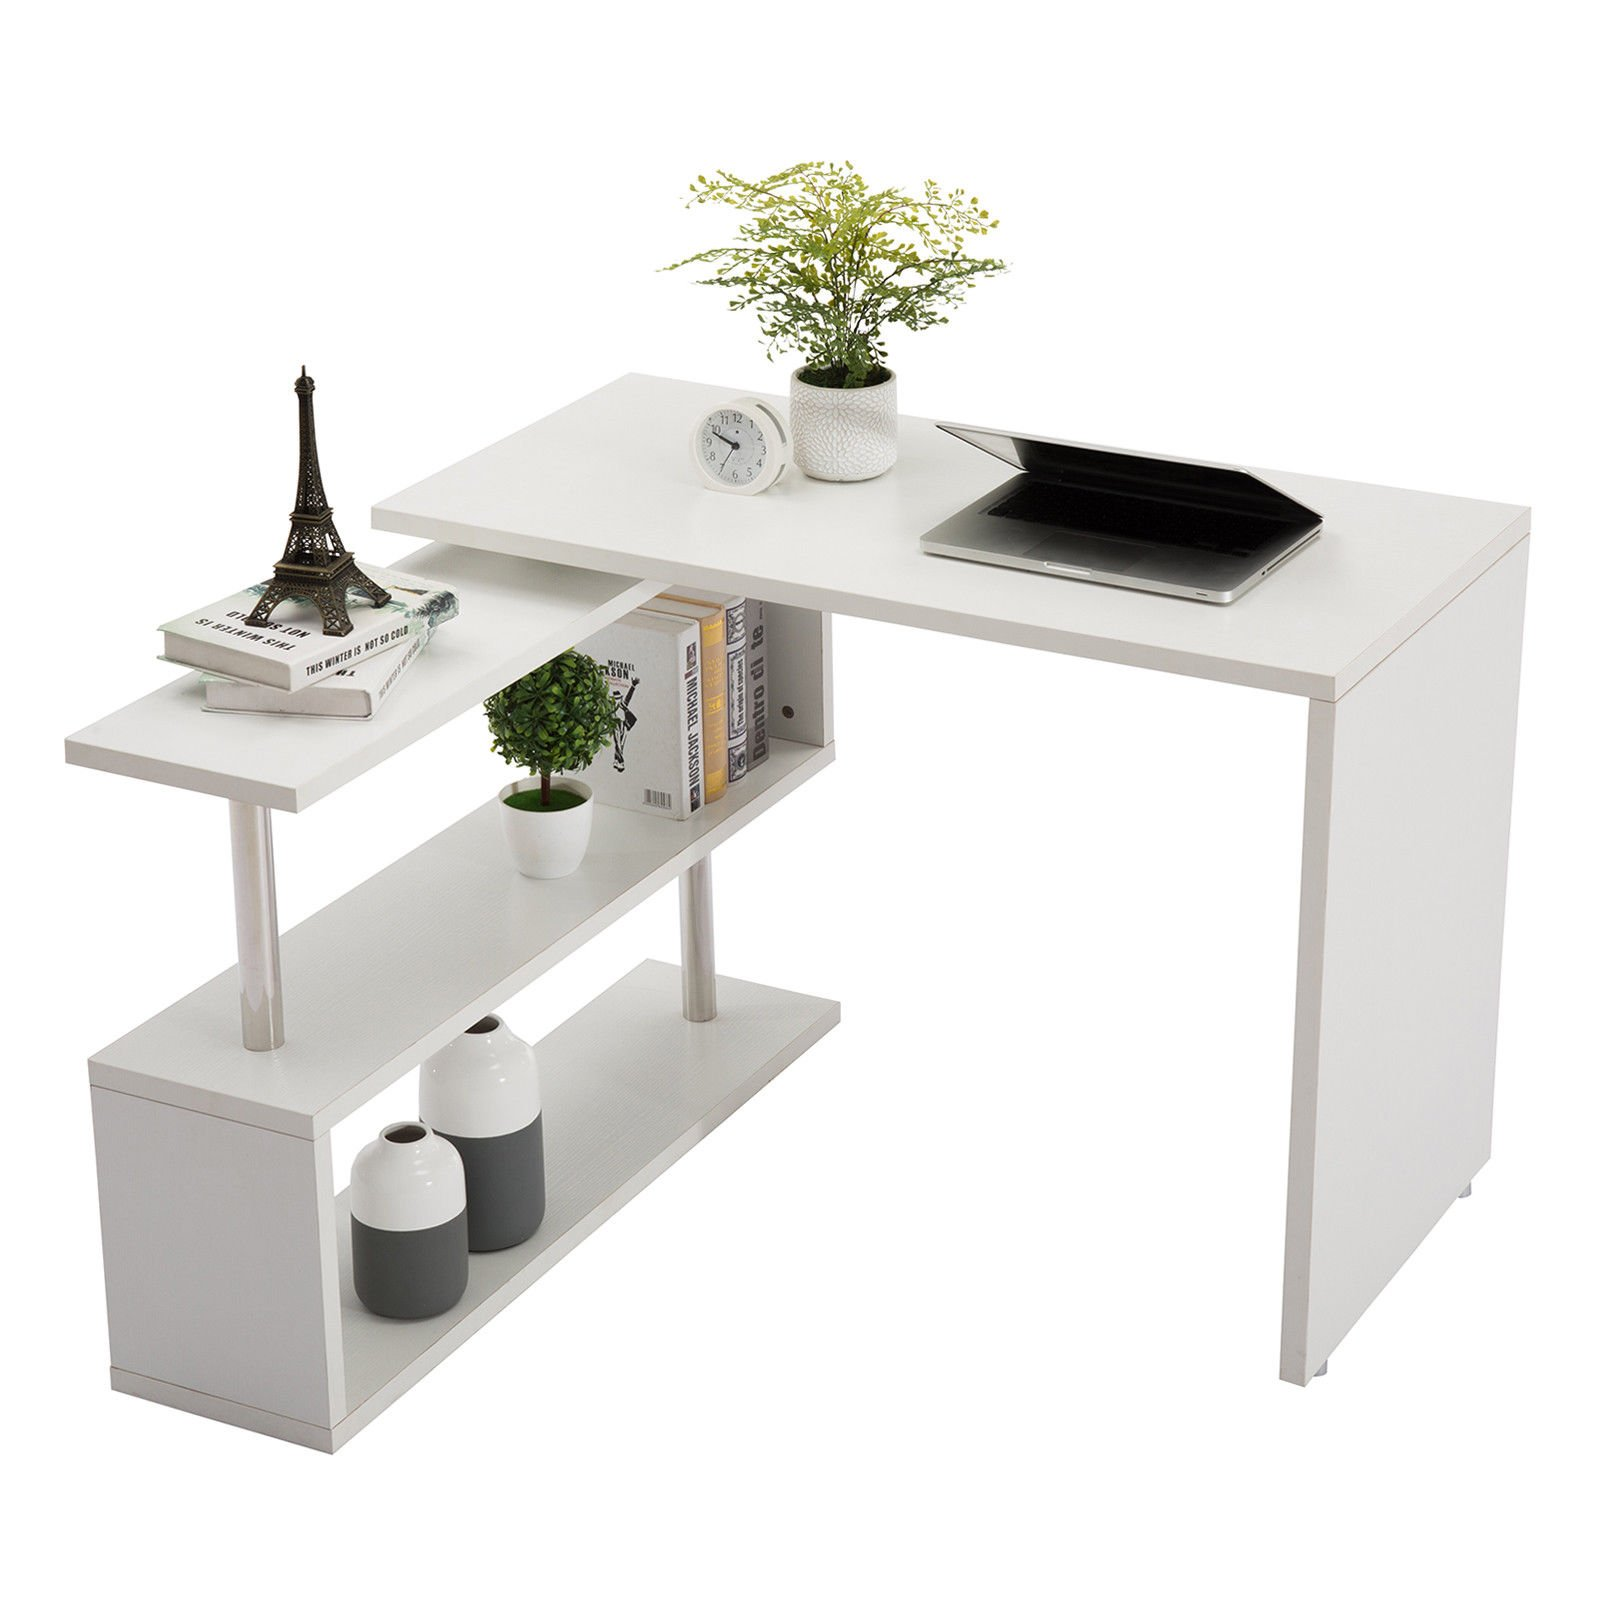 L-Shaped Rotating Desk Swivel Corner Computer Desk 40'' Rotatable Writing Table Workstation W/Storage Bookshelves for Home Office by Super Office